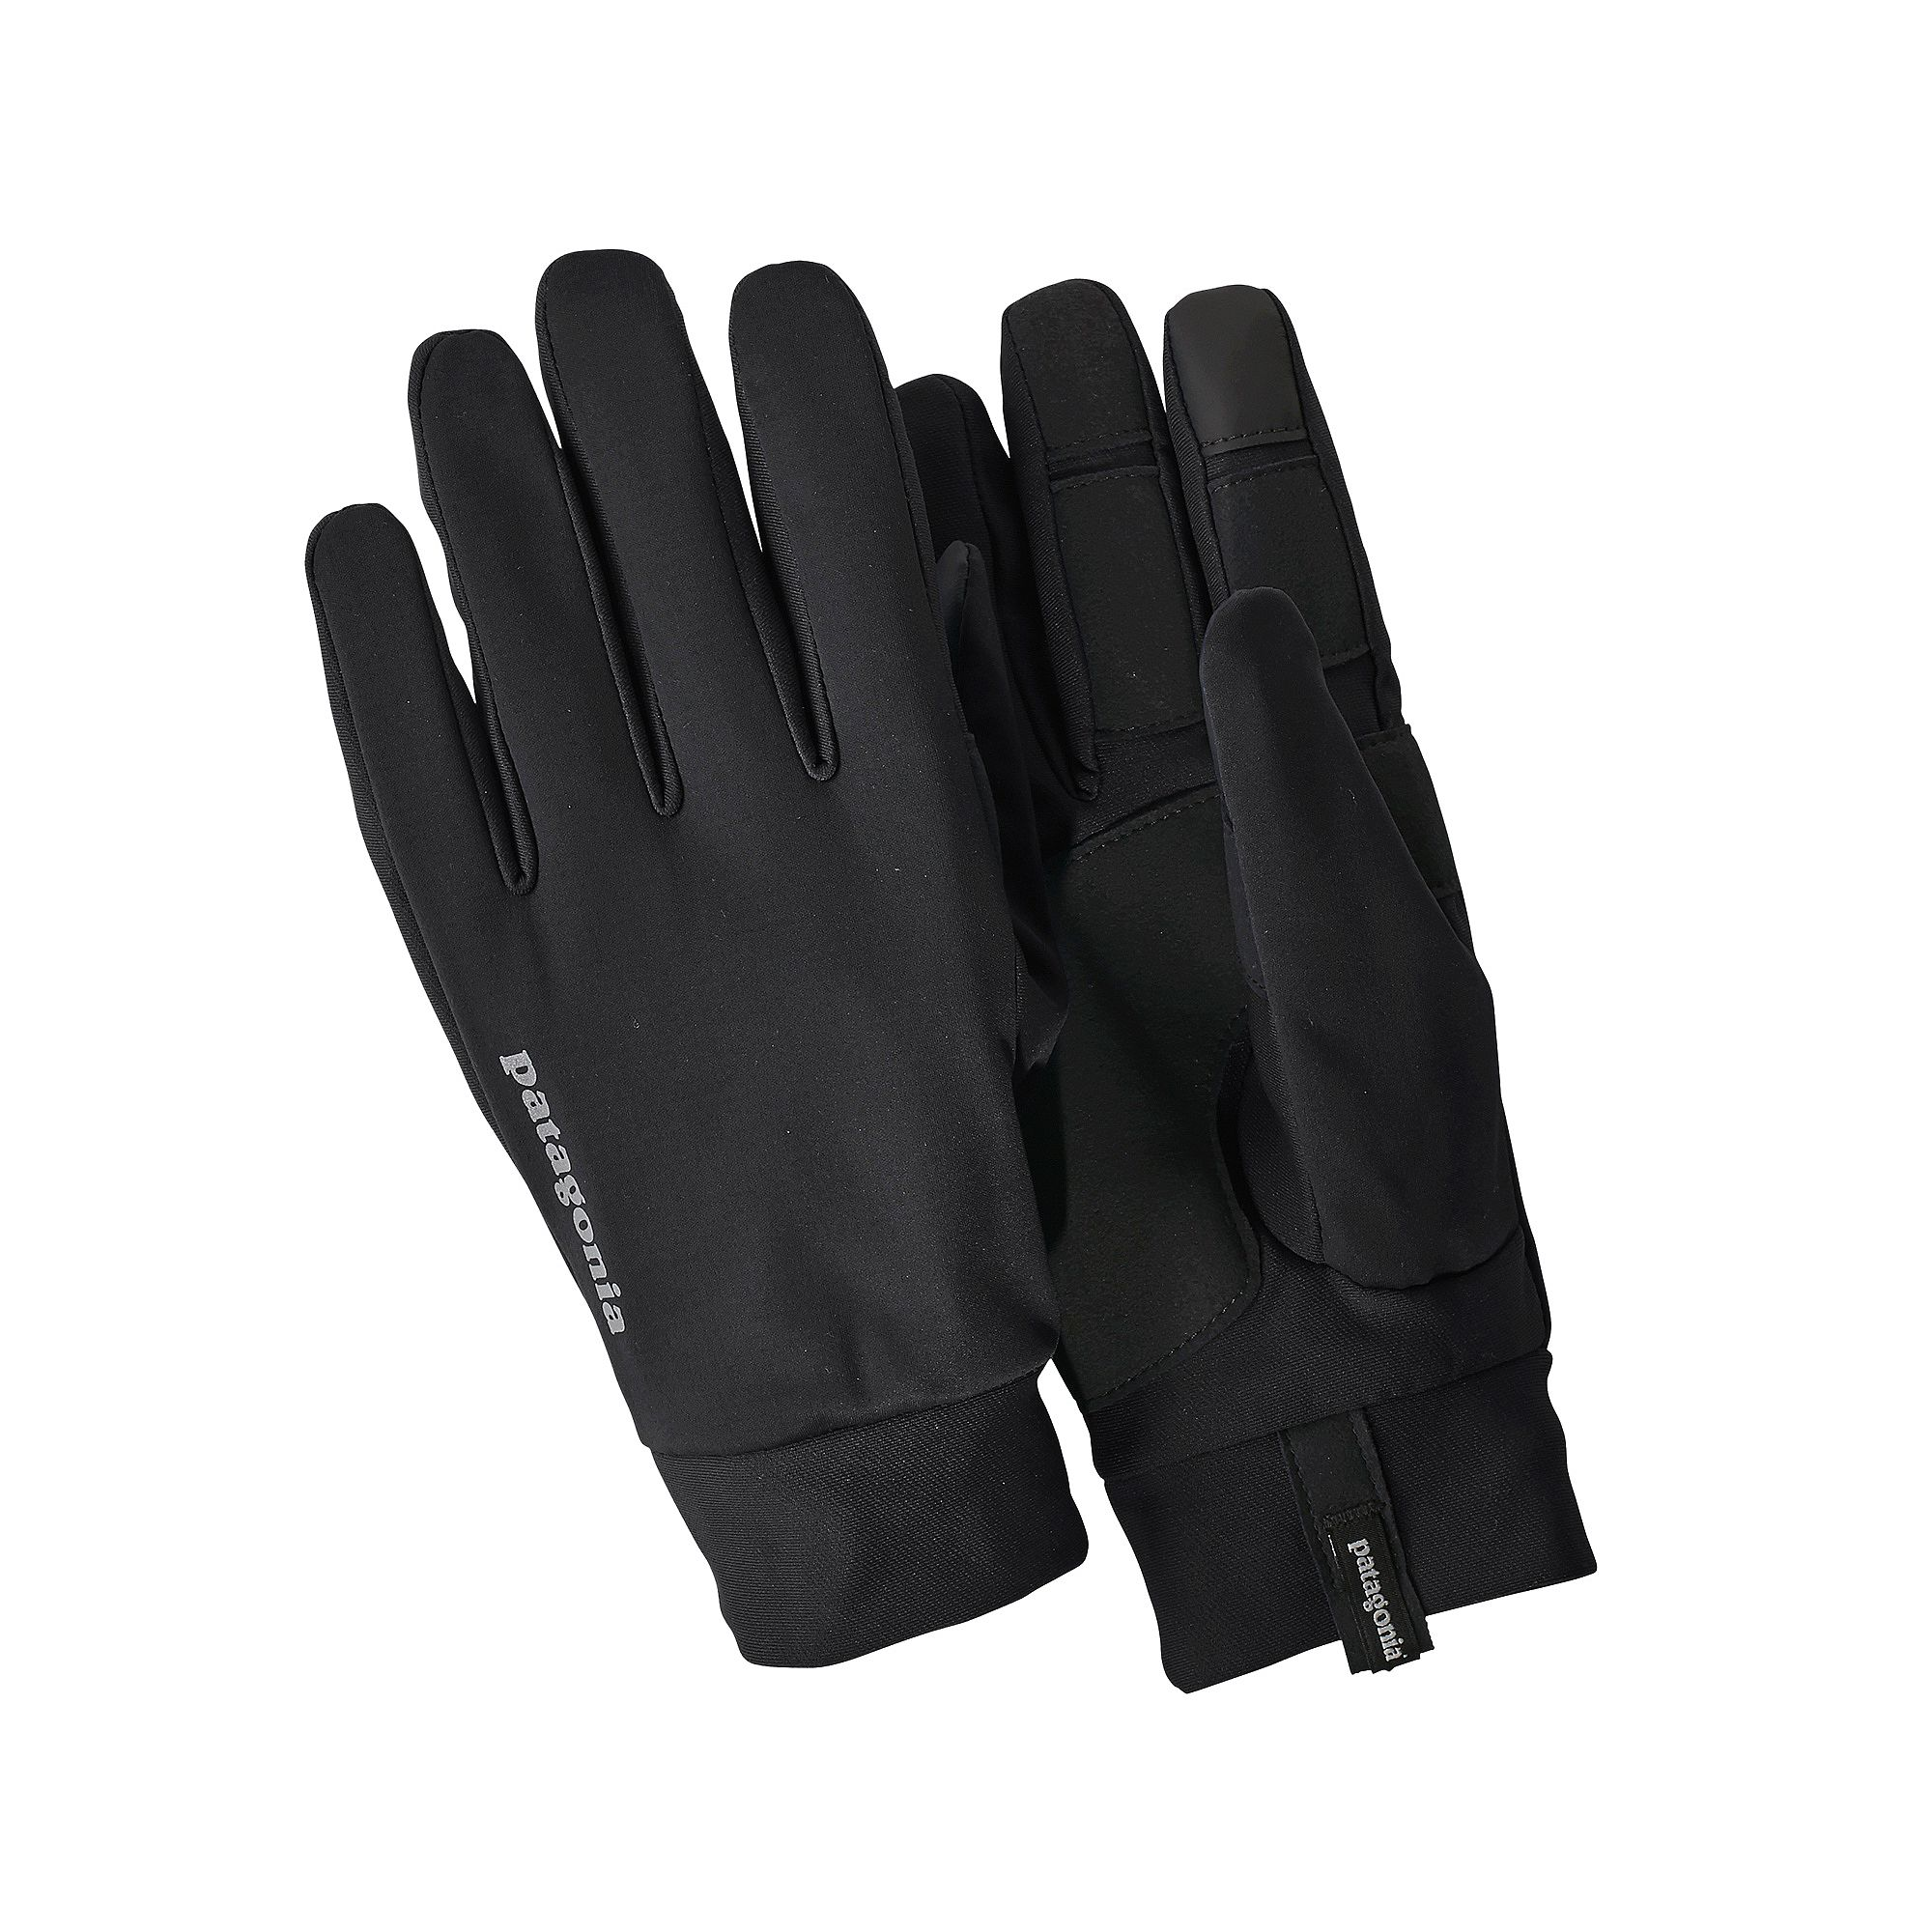 PATAGONIA WIND SHIELD GLOVES (33336)